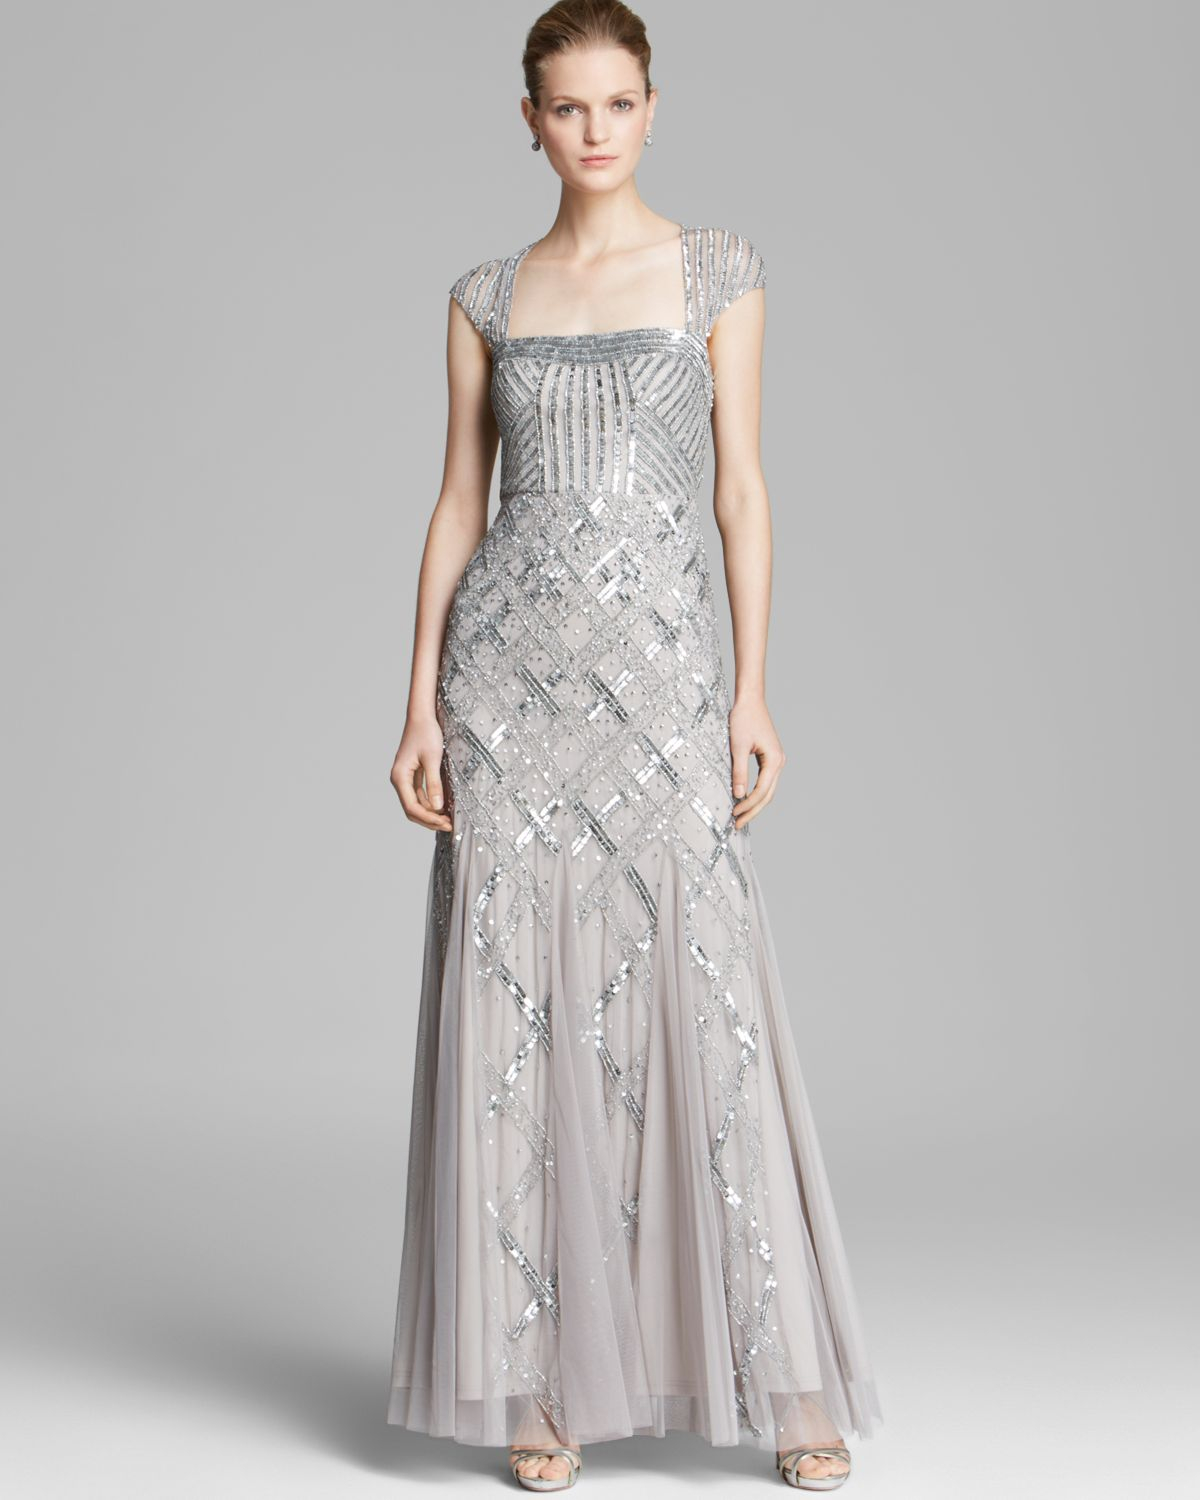 Lyst Adrianna Papell Gown Cap Sleeve Cutout Back In Metallic